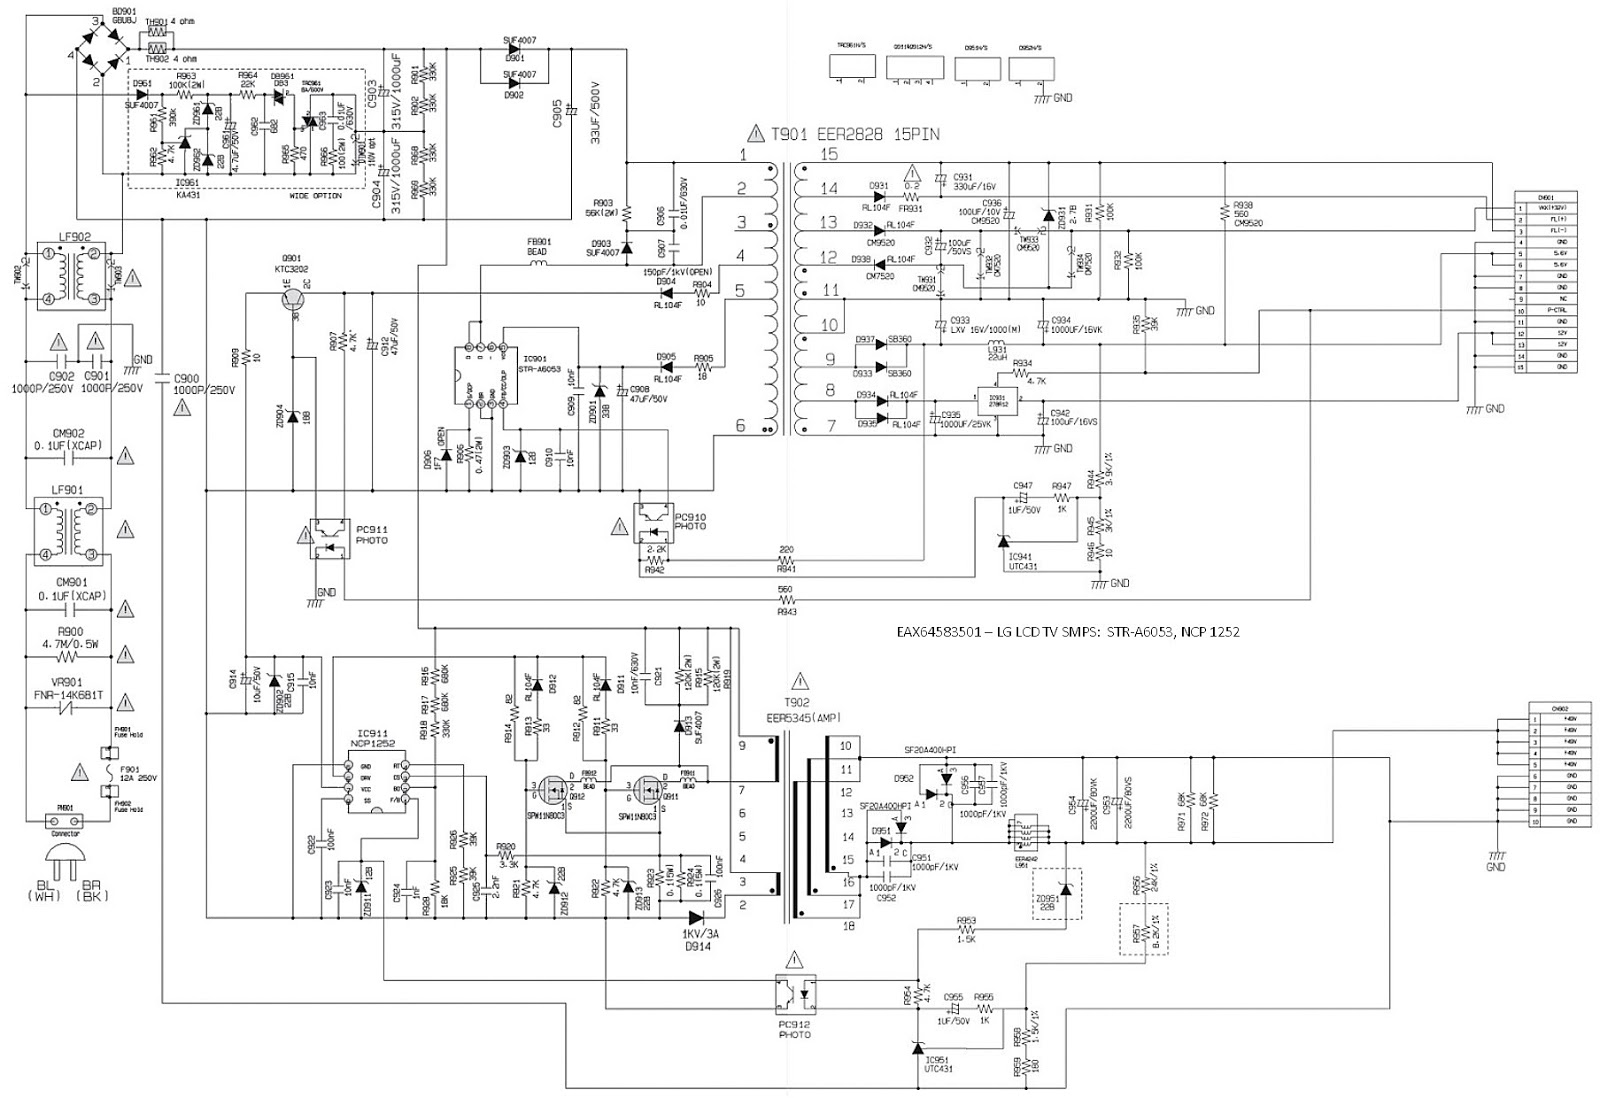 small resolution of eax64583501 lg lcd tv smps schematic schematic diagrams lg led tv smps circuit diagram lg led